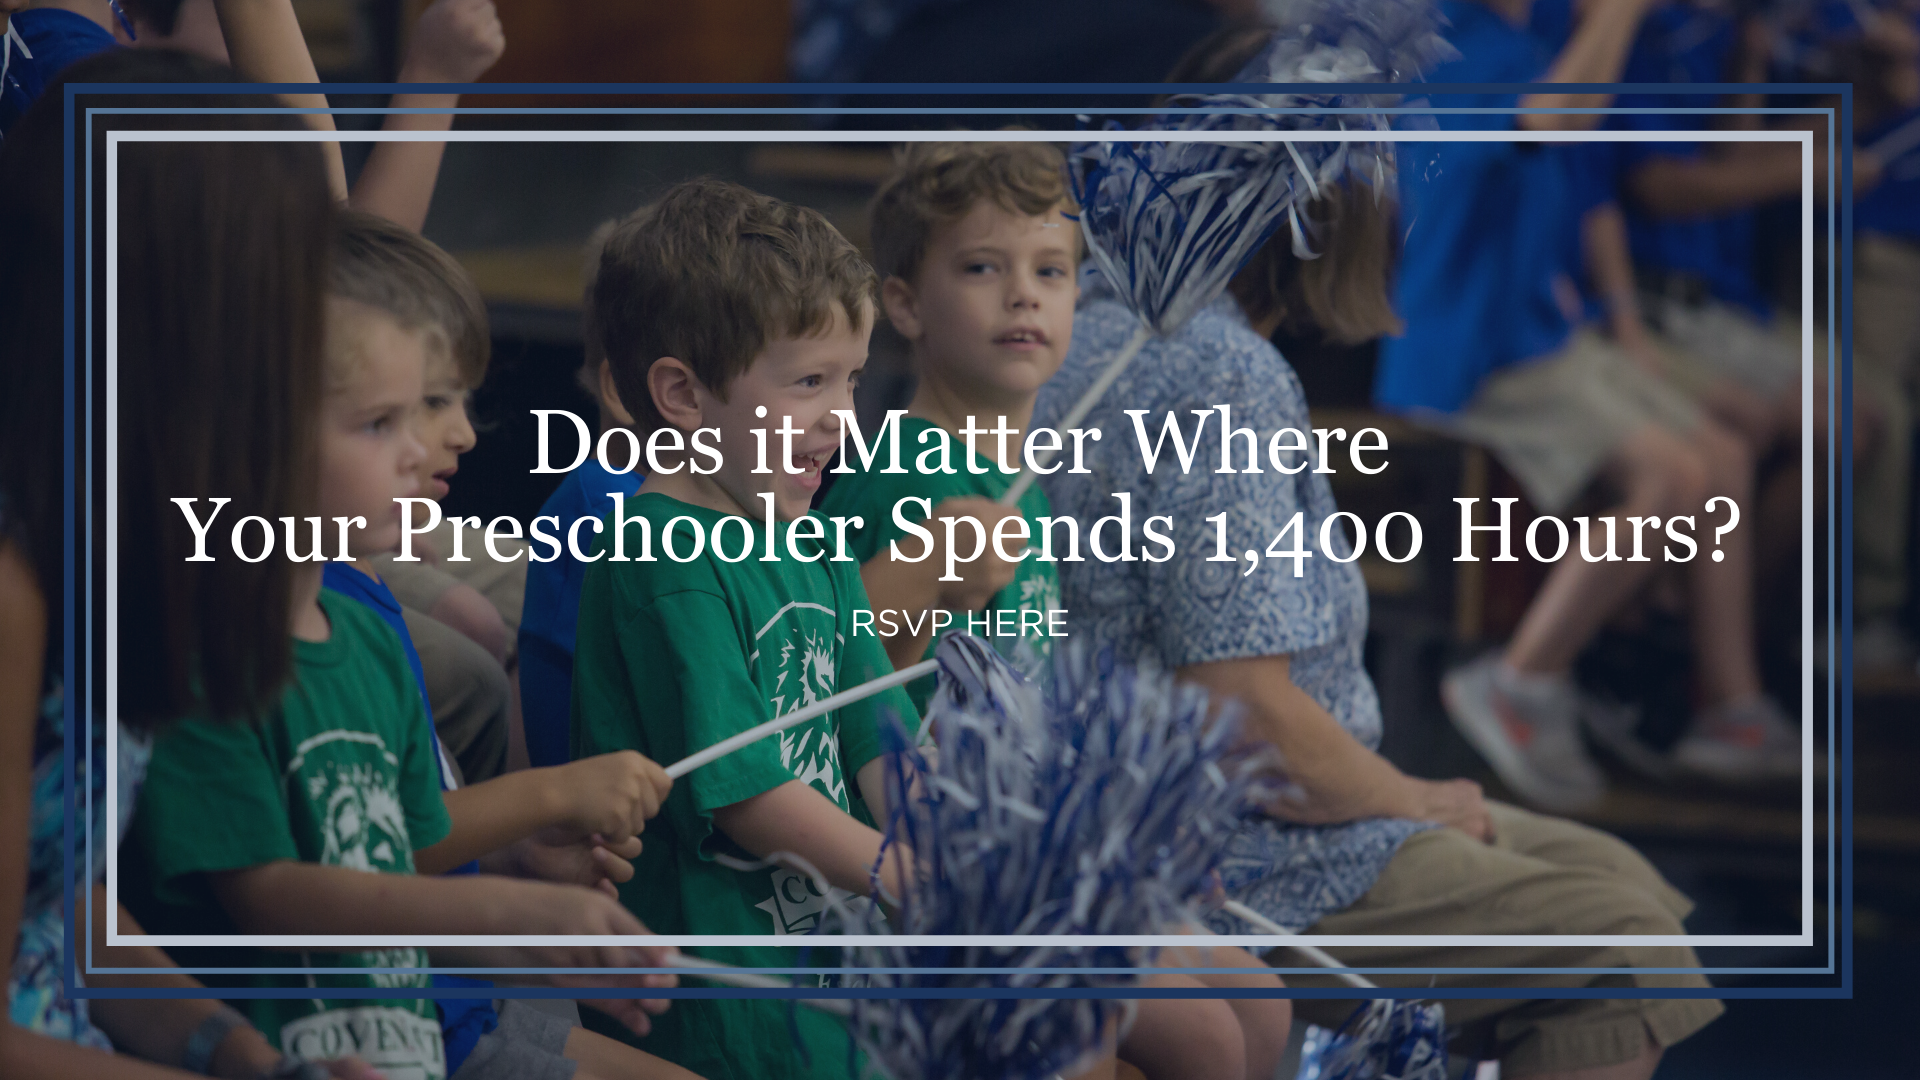 Does it Matter Where Your Preschooler Spends 1,400 Hours?